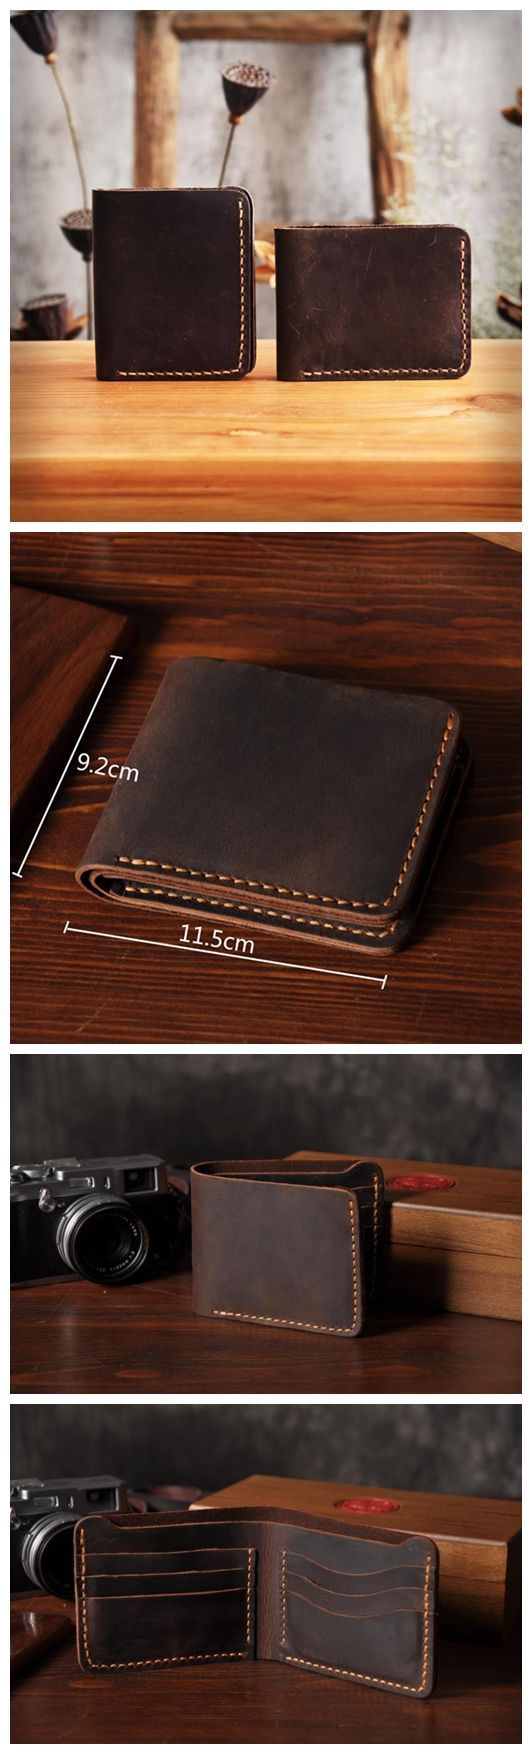 338 Best Billeteras Images On Pinterest Leather Craft Leather